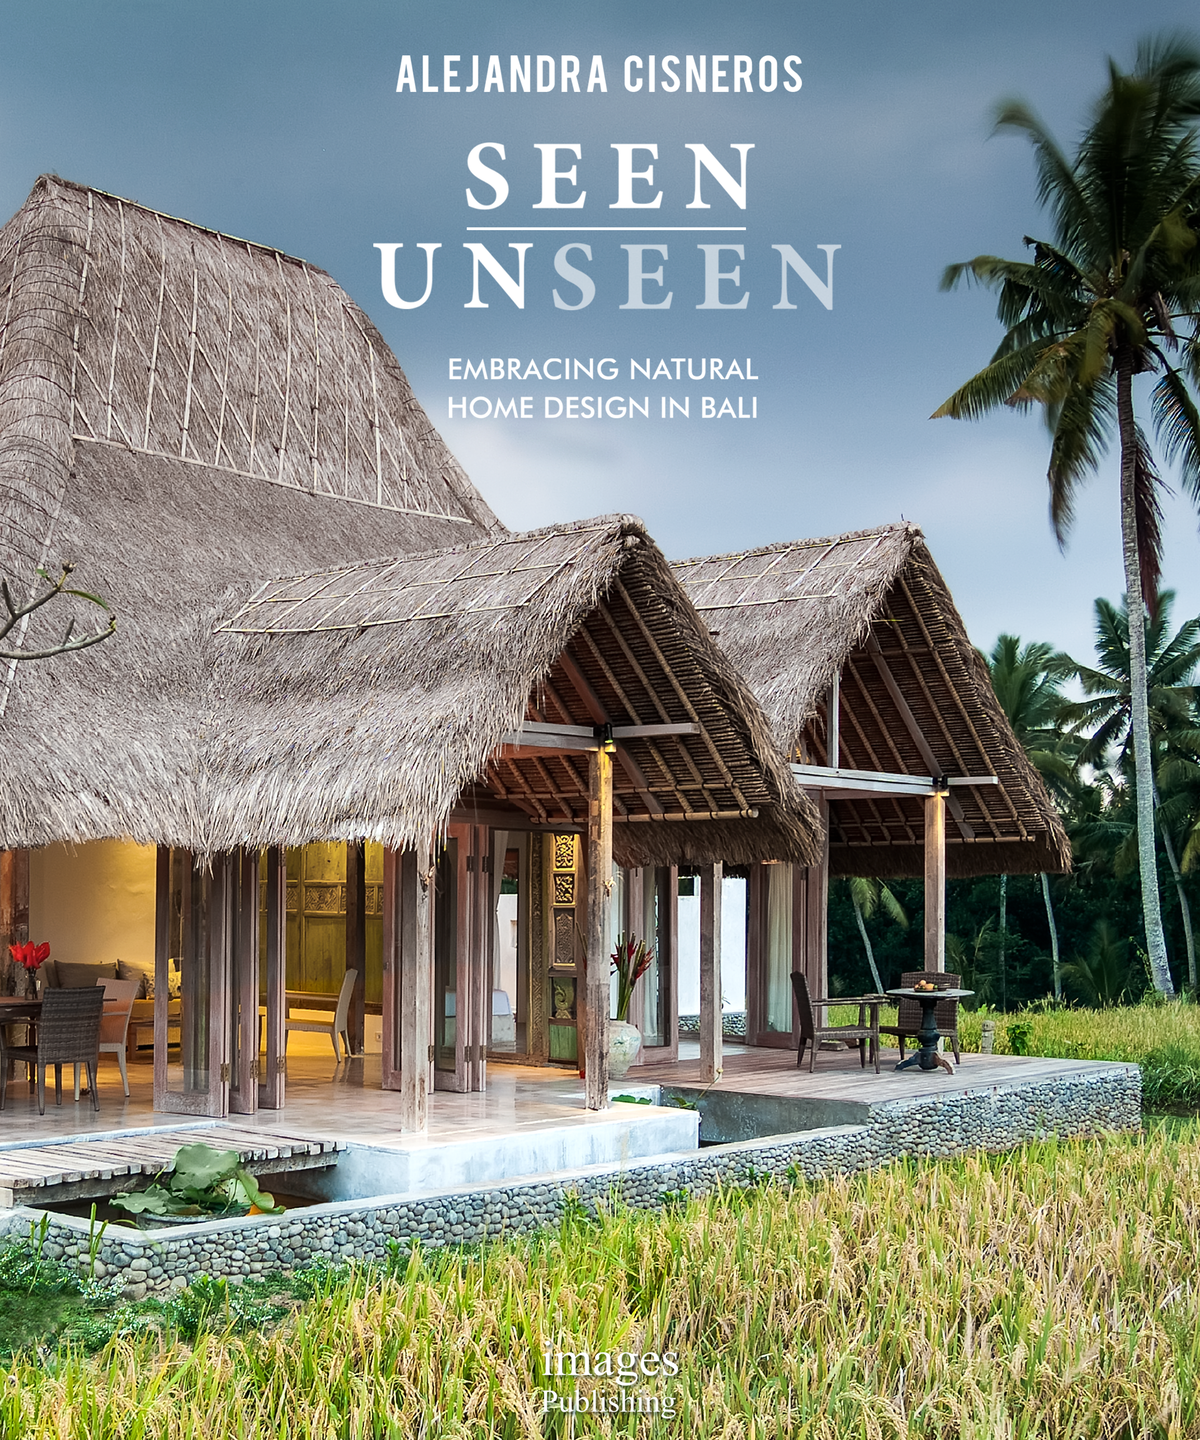 SEEN UNSEEN  Embracing Natural Home Design on Bali